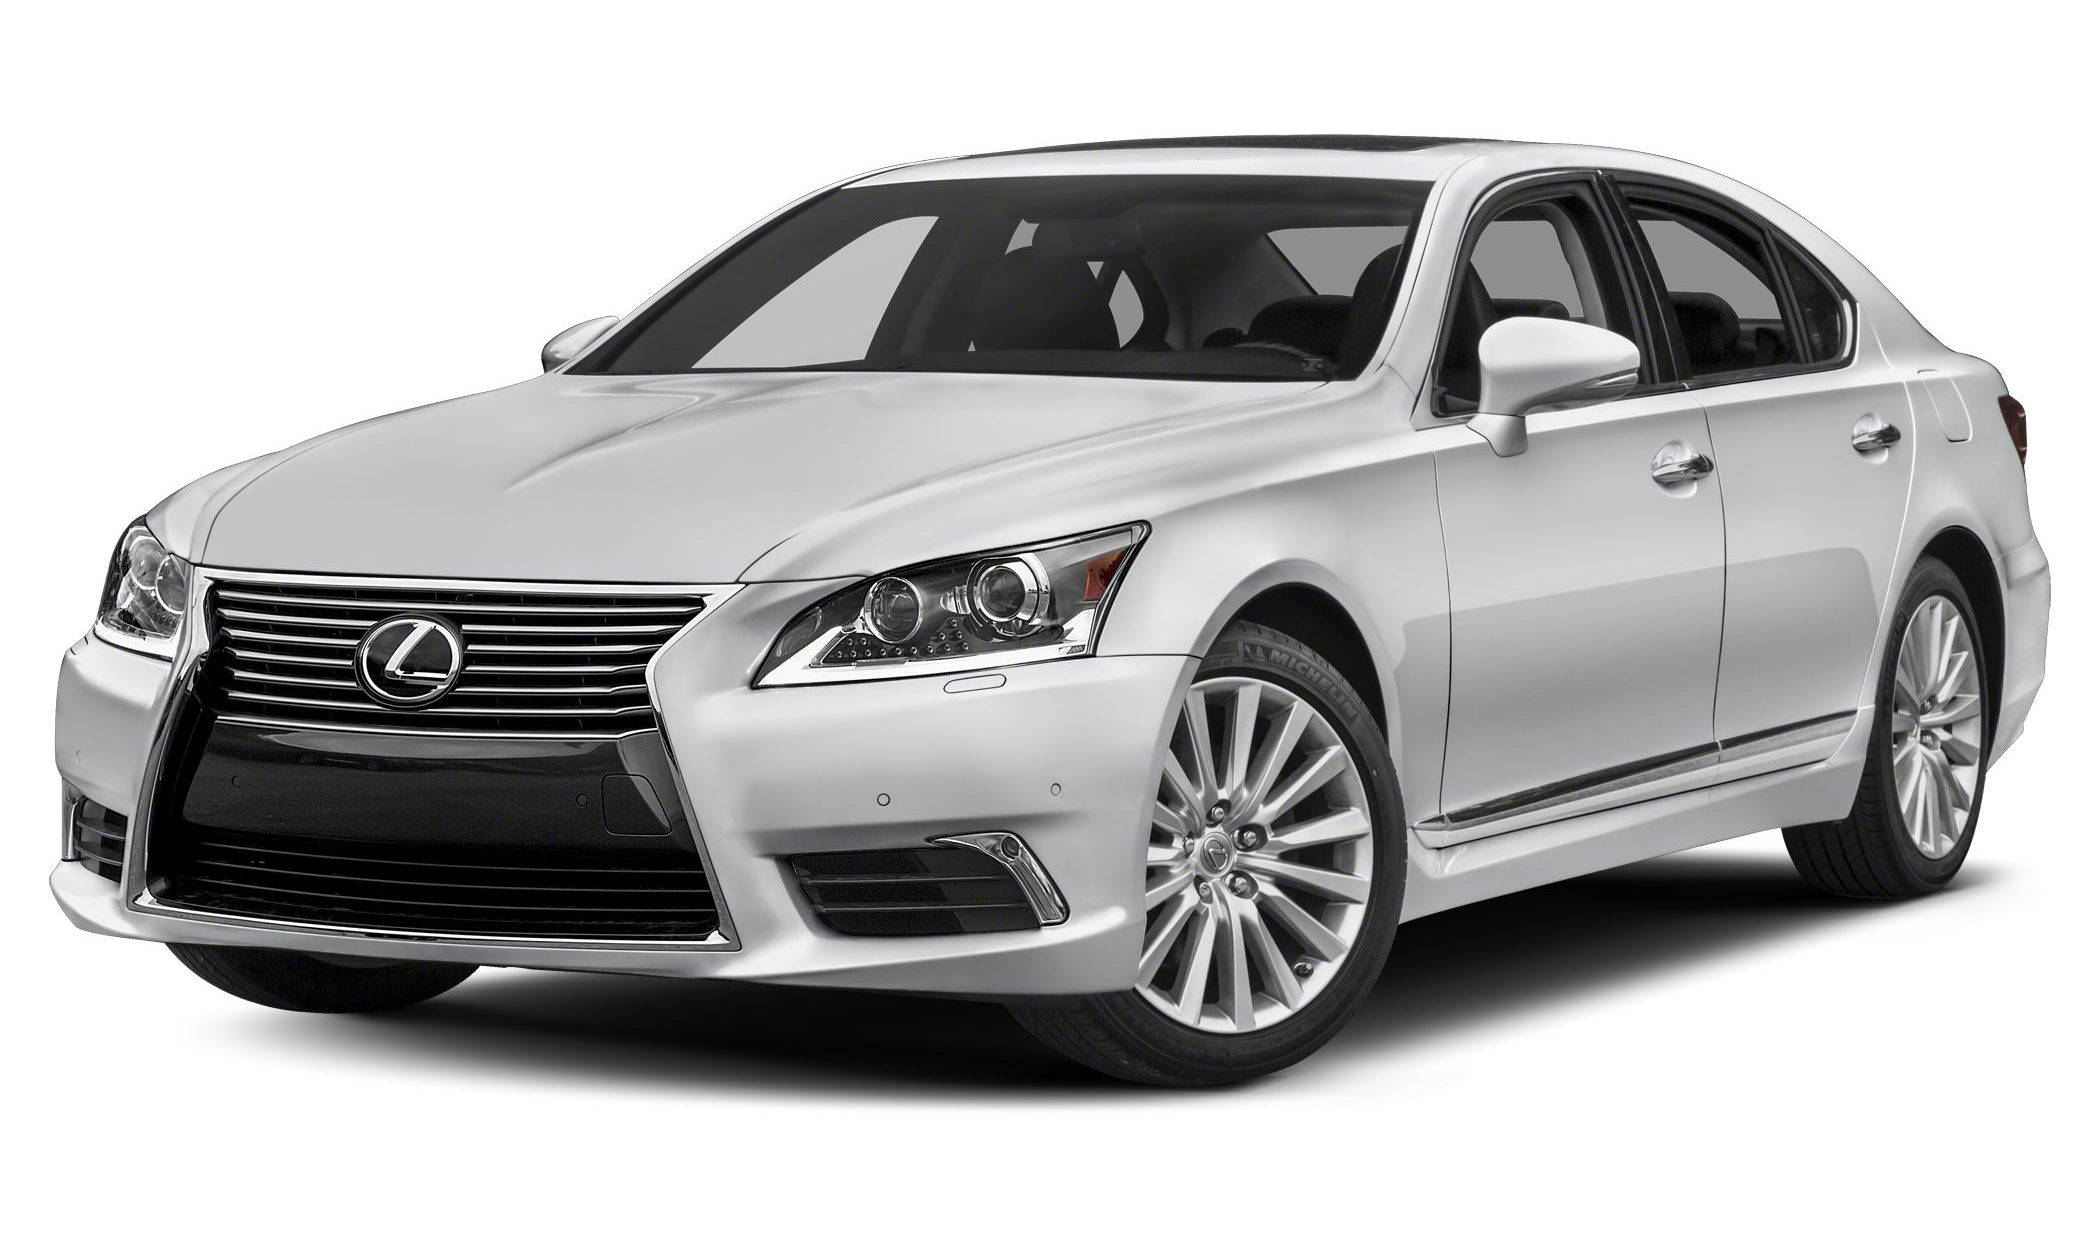 2017 lexus ls 600h platinum lwb prices specifications in uae. Black Bedroom Furniture Sets. Home Design Ideas